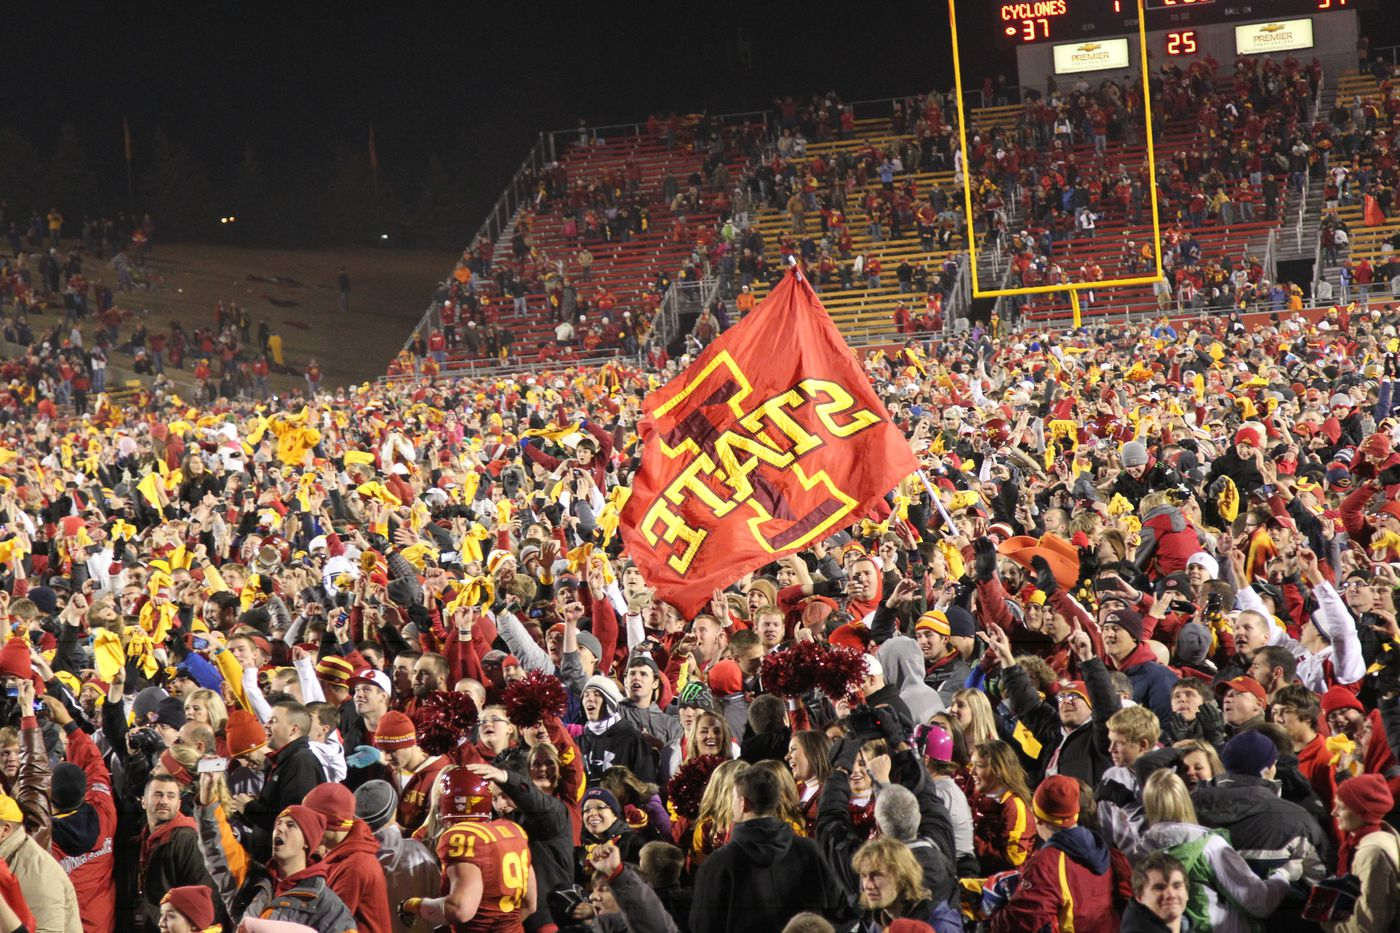 Oklahoma State vs. Iowa State: The 2011 TD that killed the BCS ...